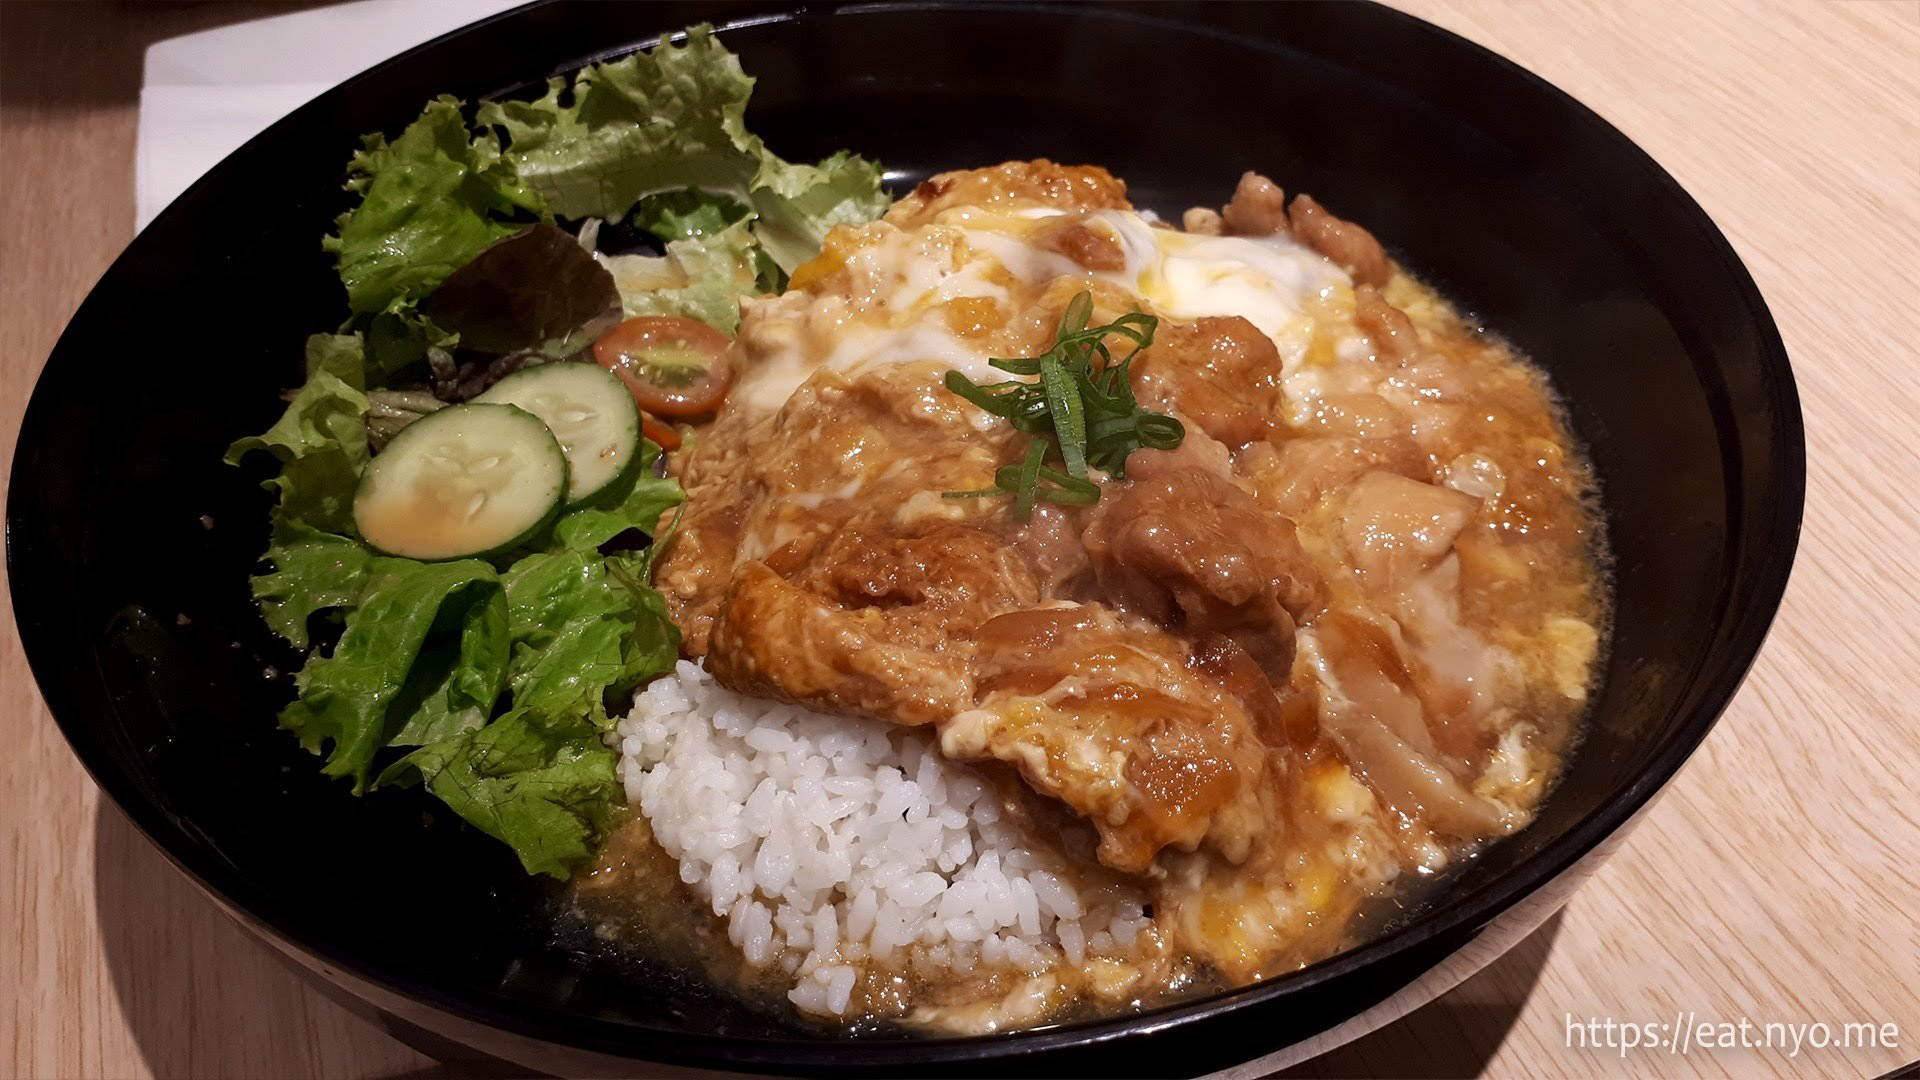 Exquisite Oyakodon